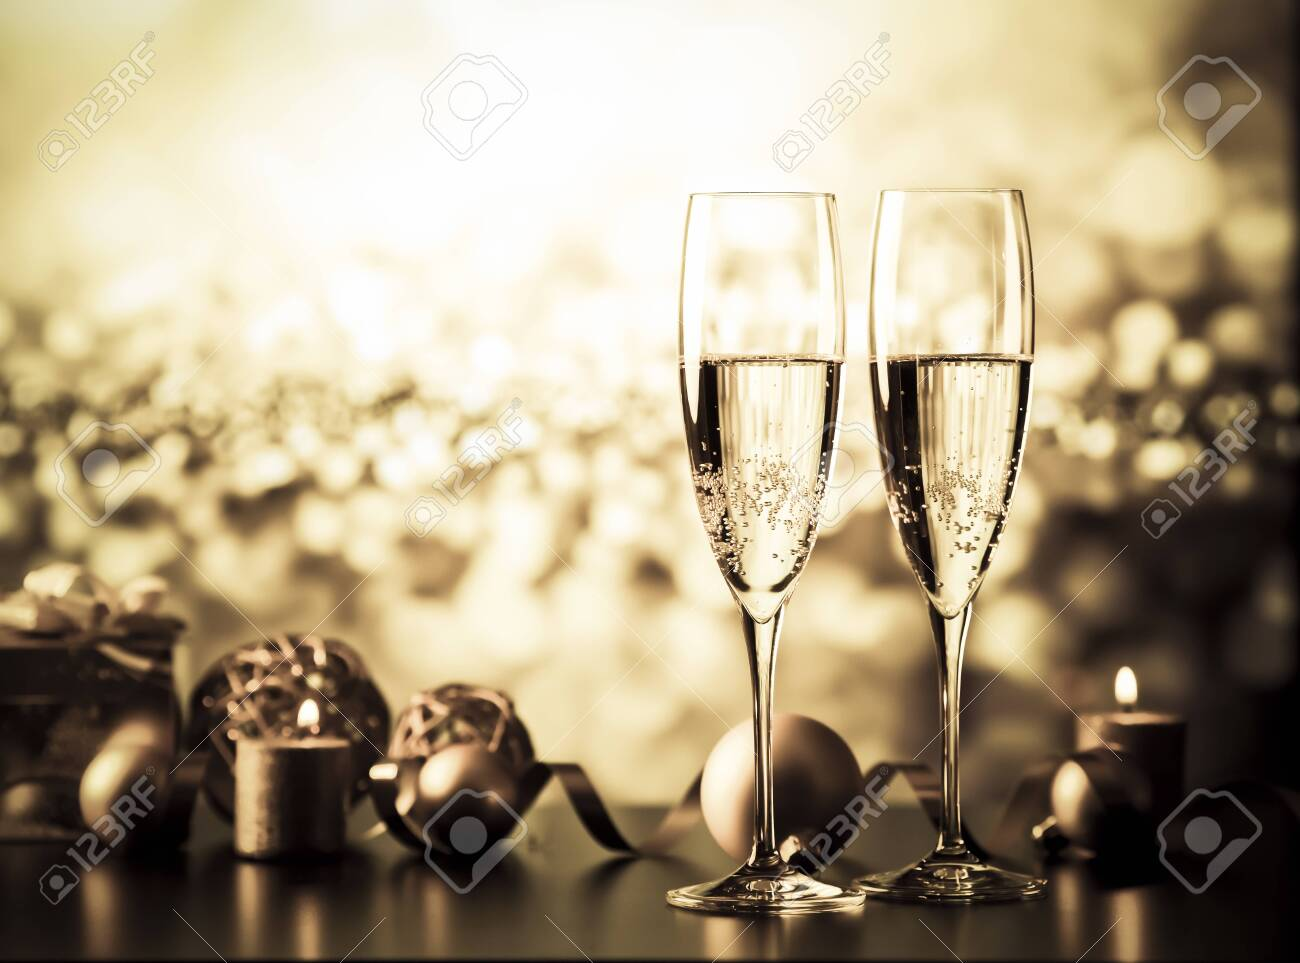 two champagne glasses against holiday lights and fireworks - new year celebration - 135574716